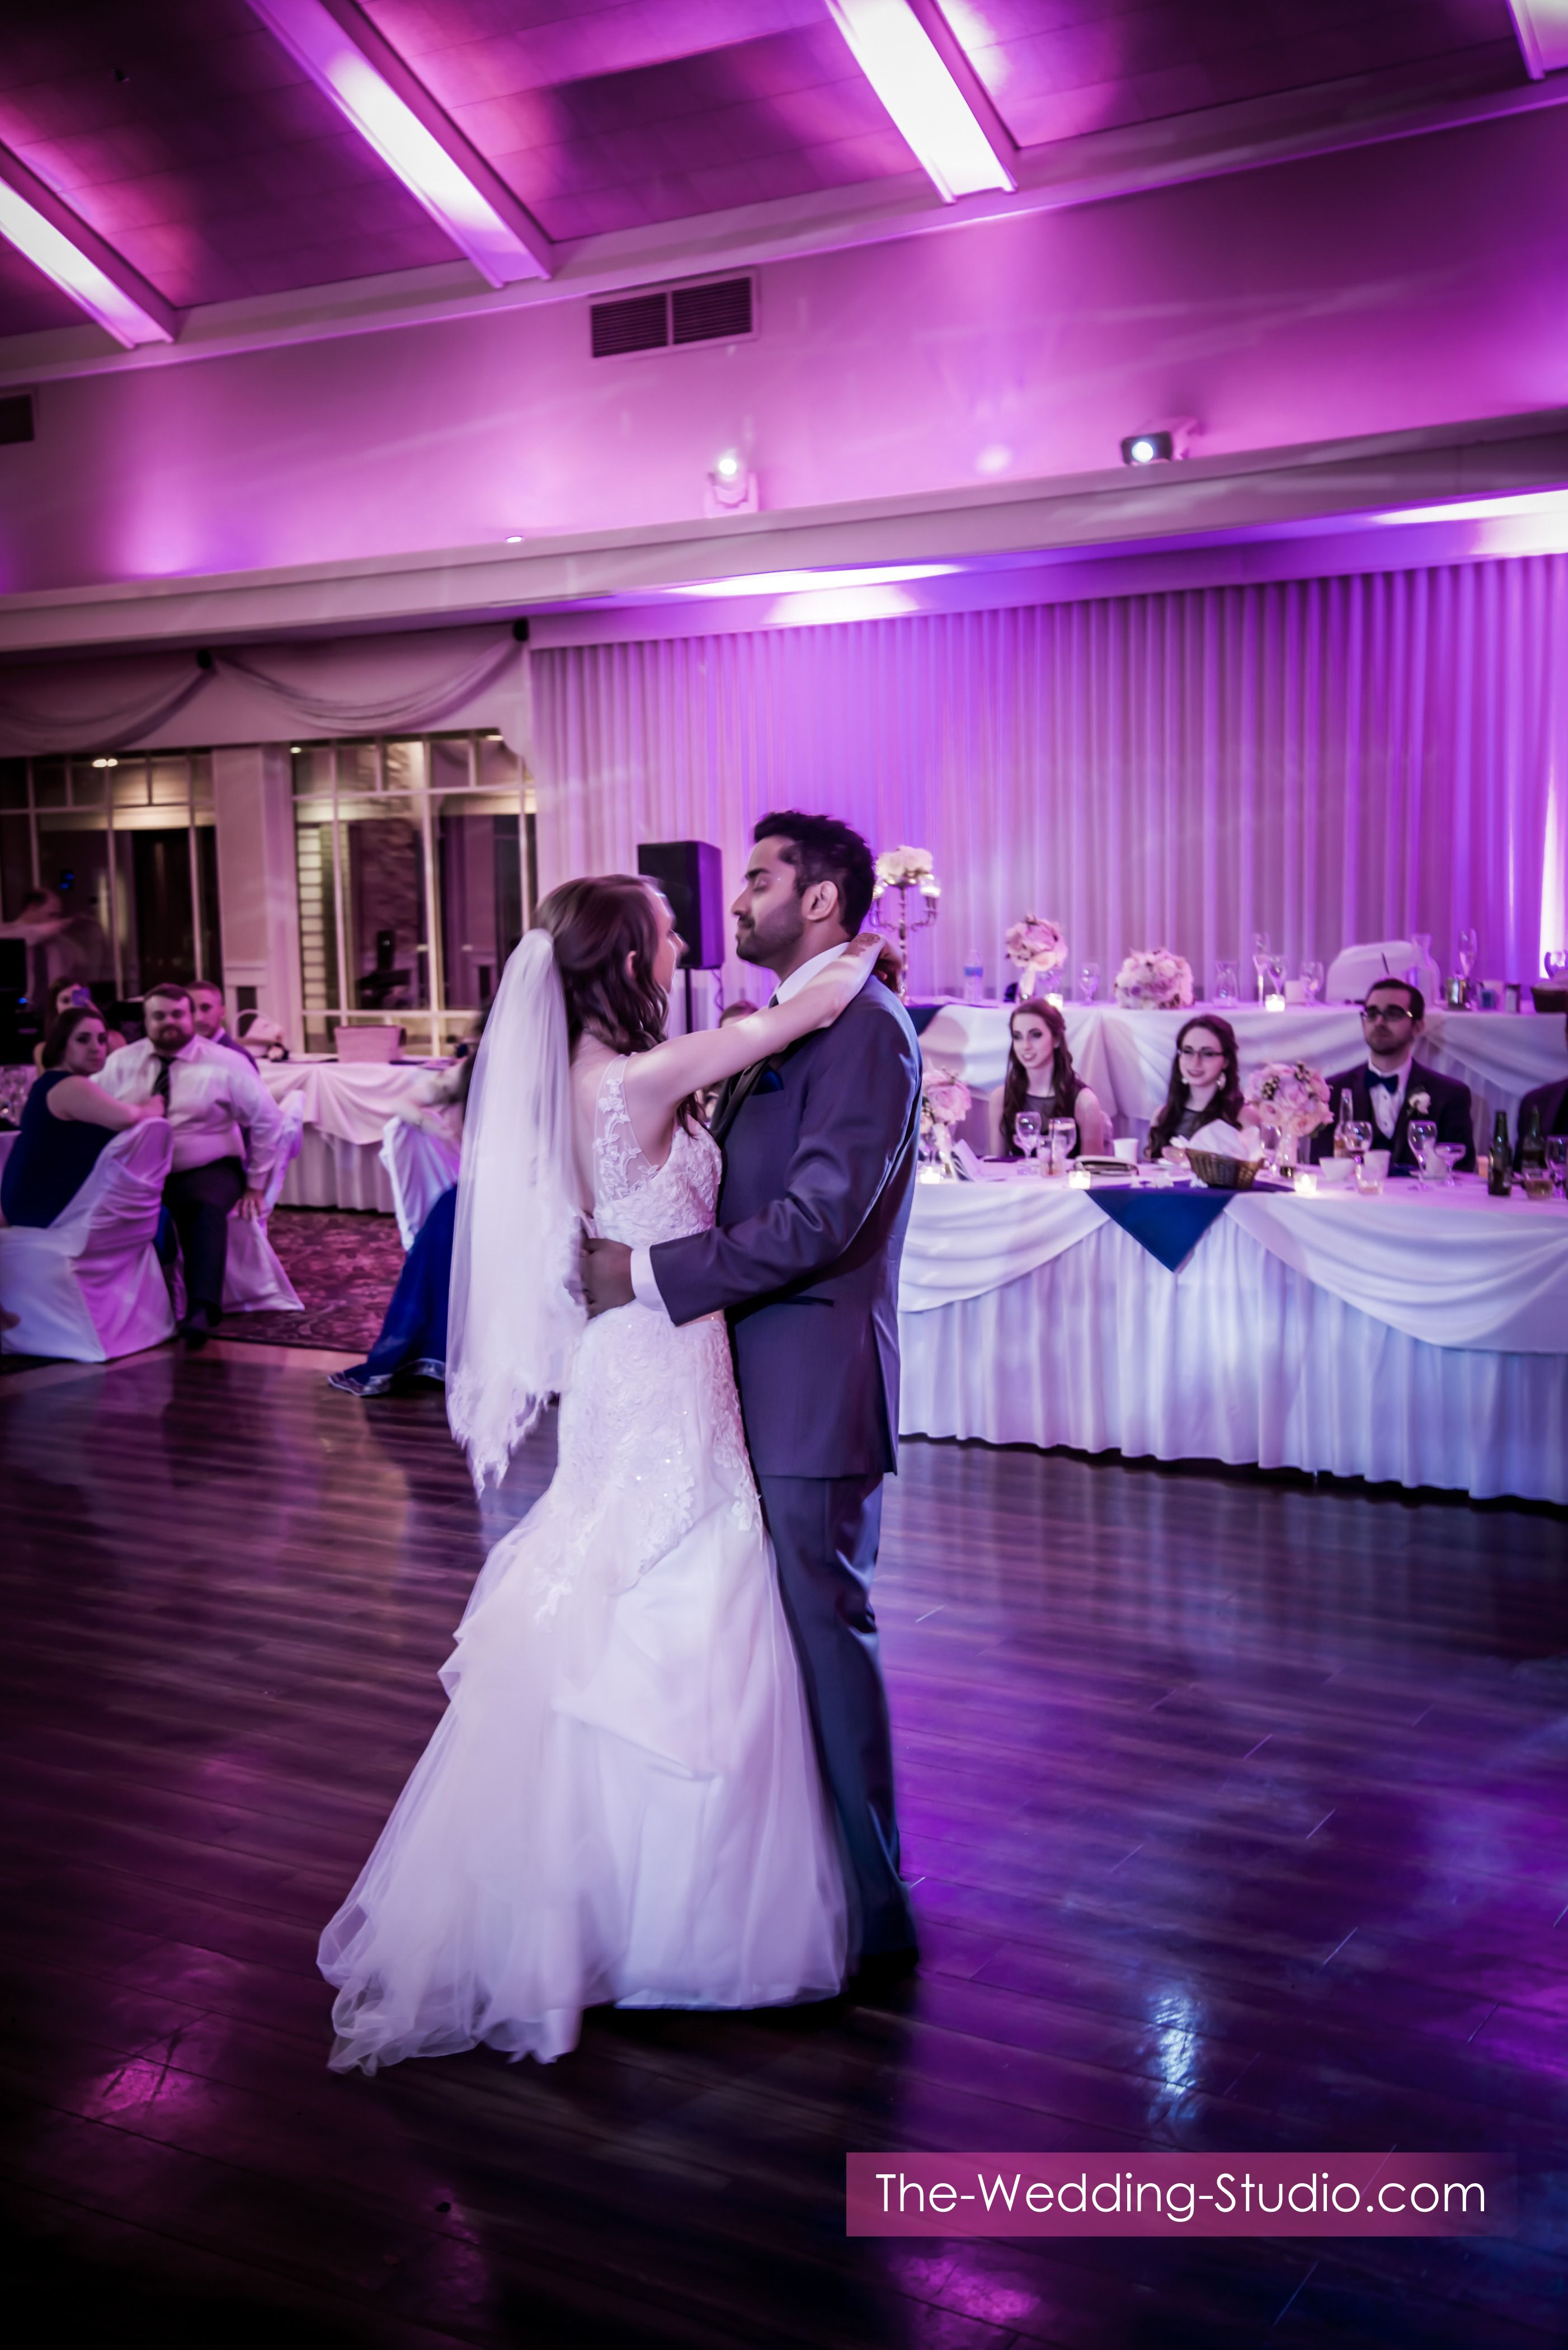 Chandler S In Schaumburg Illinois Photographed By The Wedding Studio